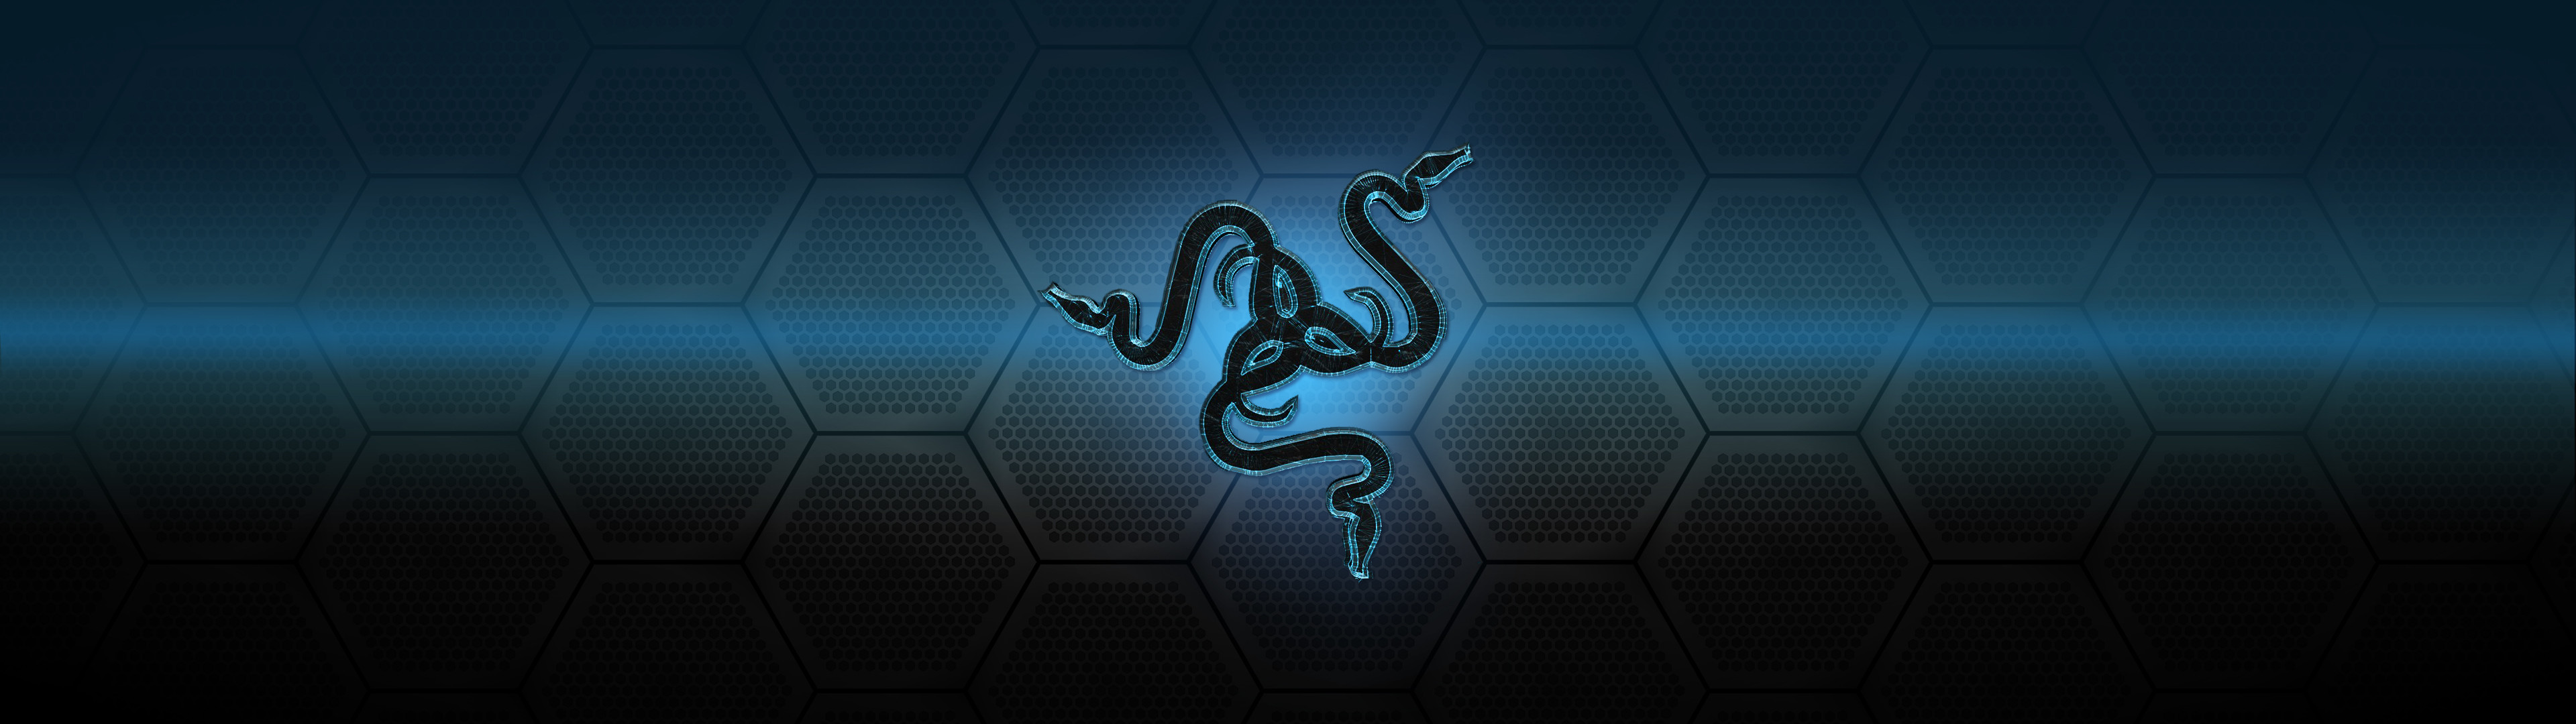 Res: 3840x1080, Razer Blue Graffiti Wallpapers 20 - 3840 X 1080